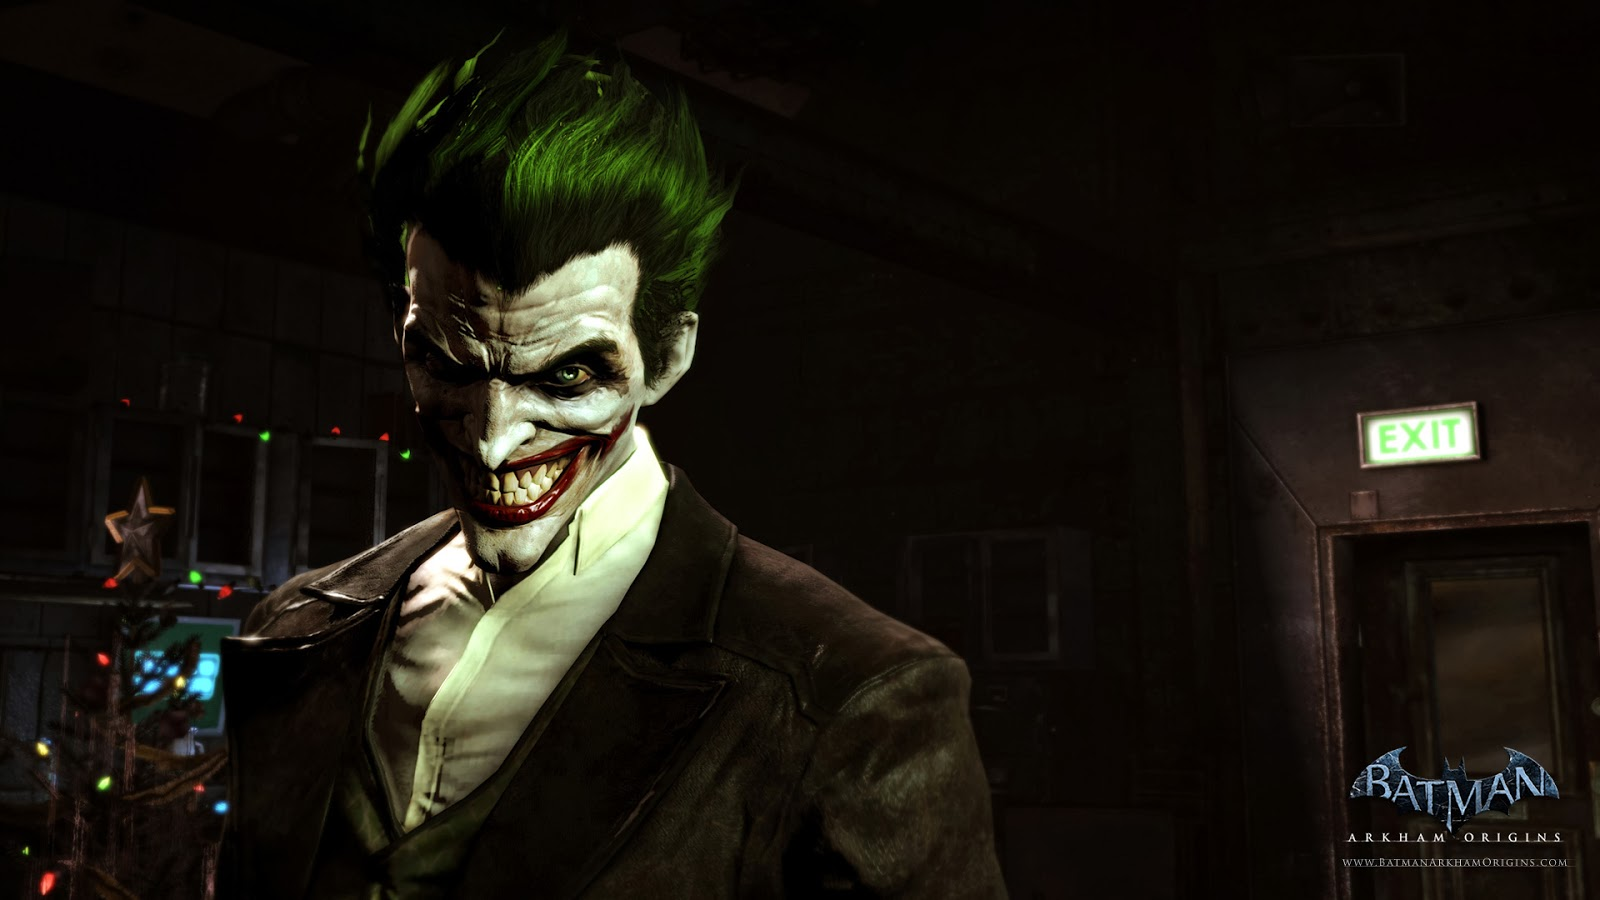 Batman Arkham Origins The Joker Wallpaper HiresMOVIEWALLcom 1600x900